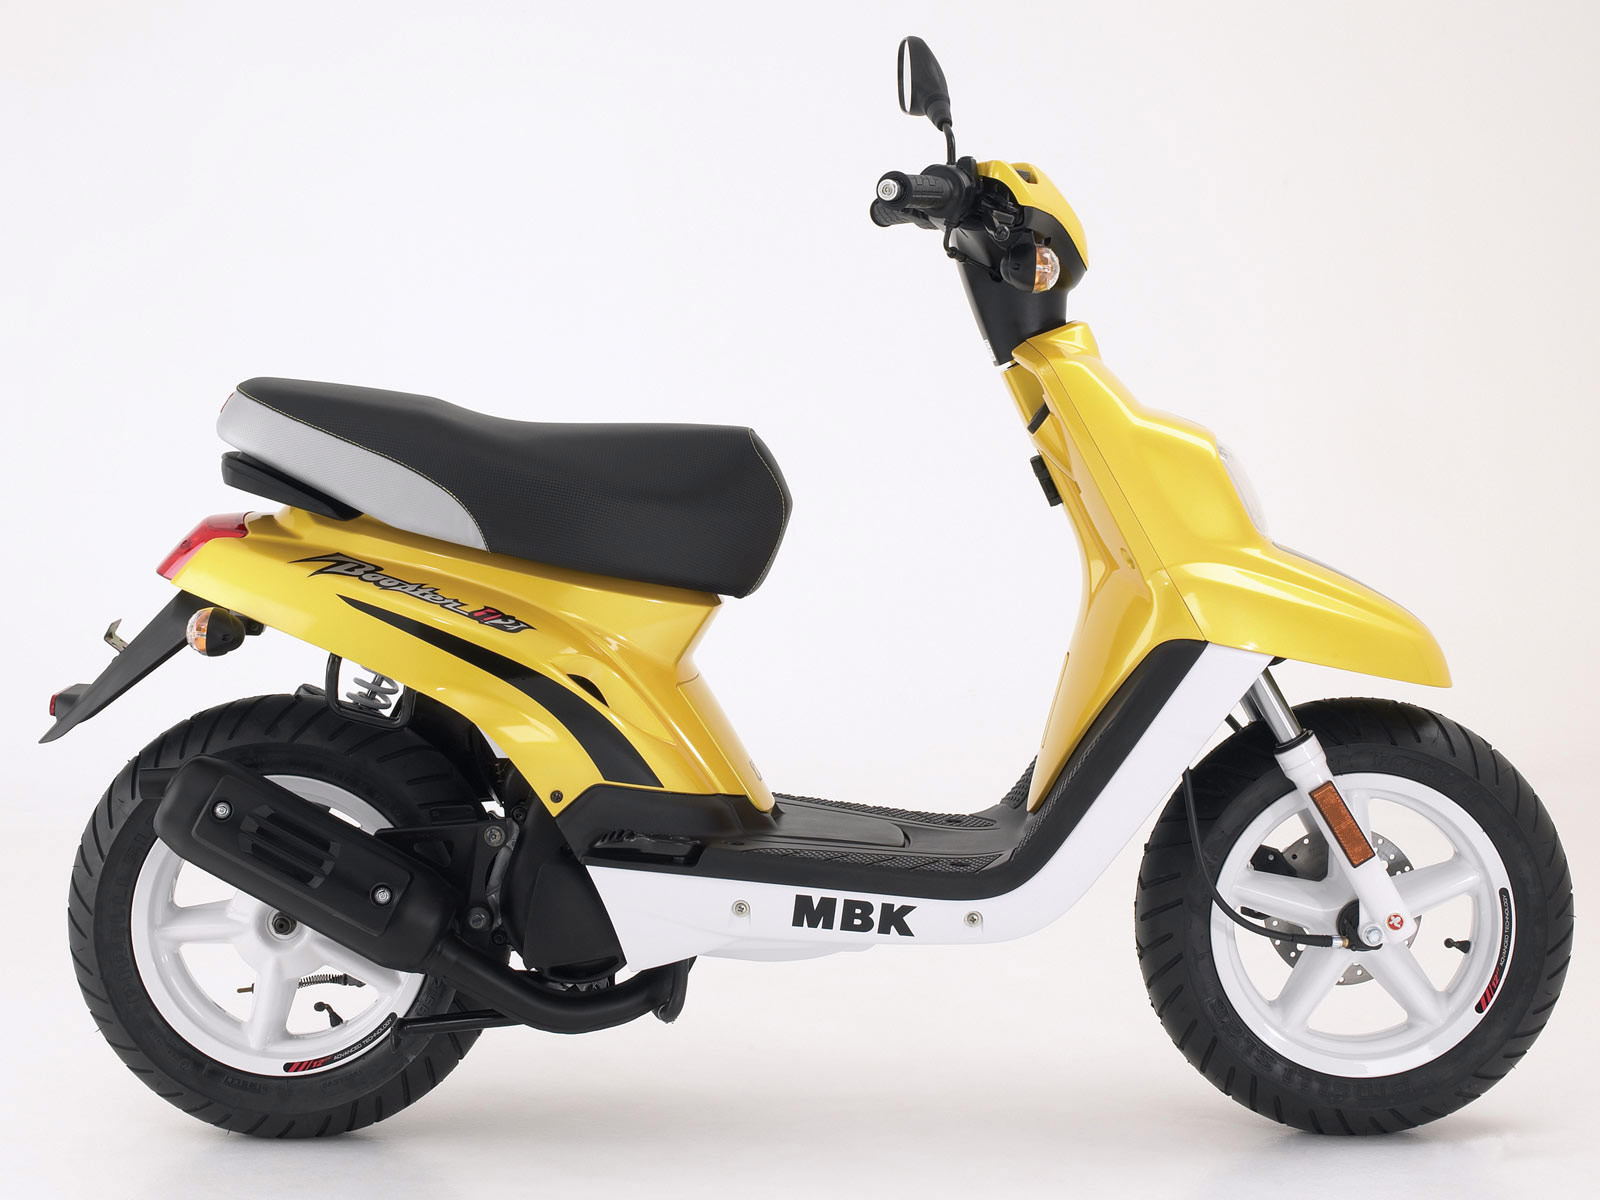 2006 Mbk Booster 12inch Scooter Pictures Specifications